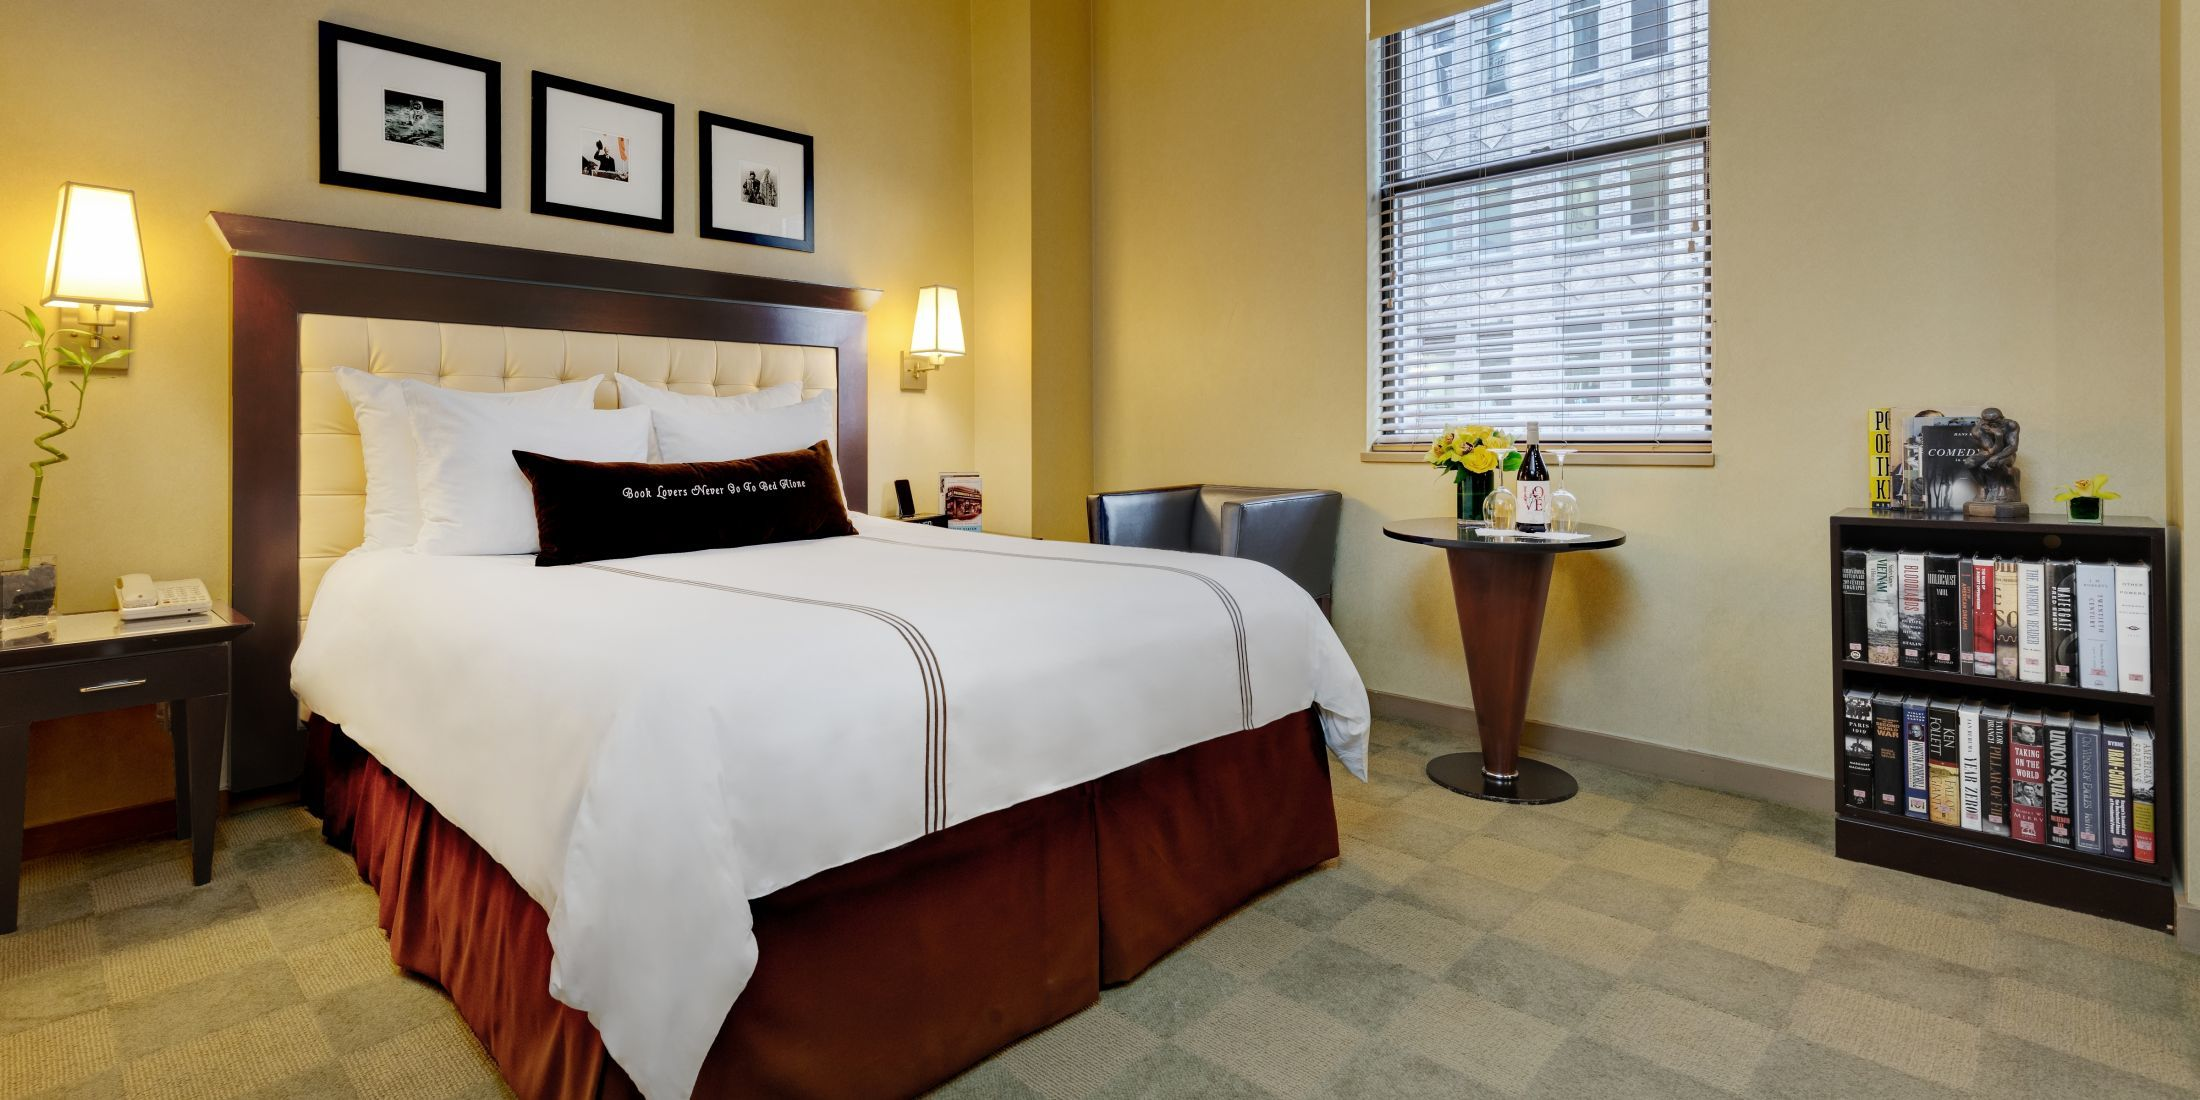 Deluxe Room with One Queen Bed with a Roll In Shower.